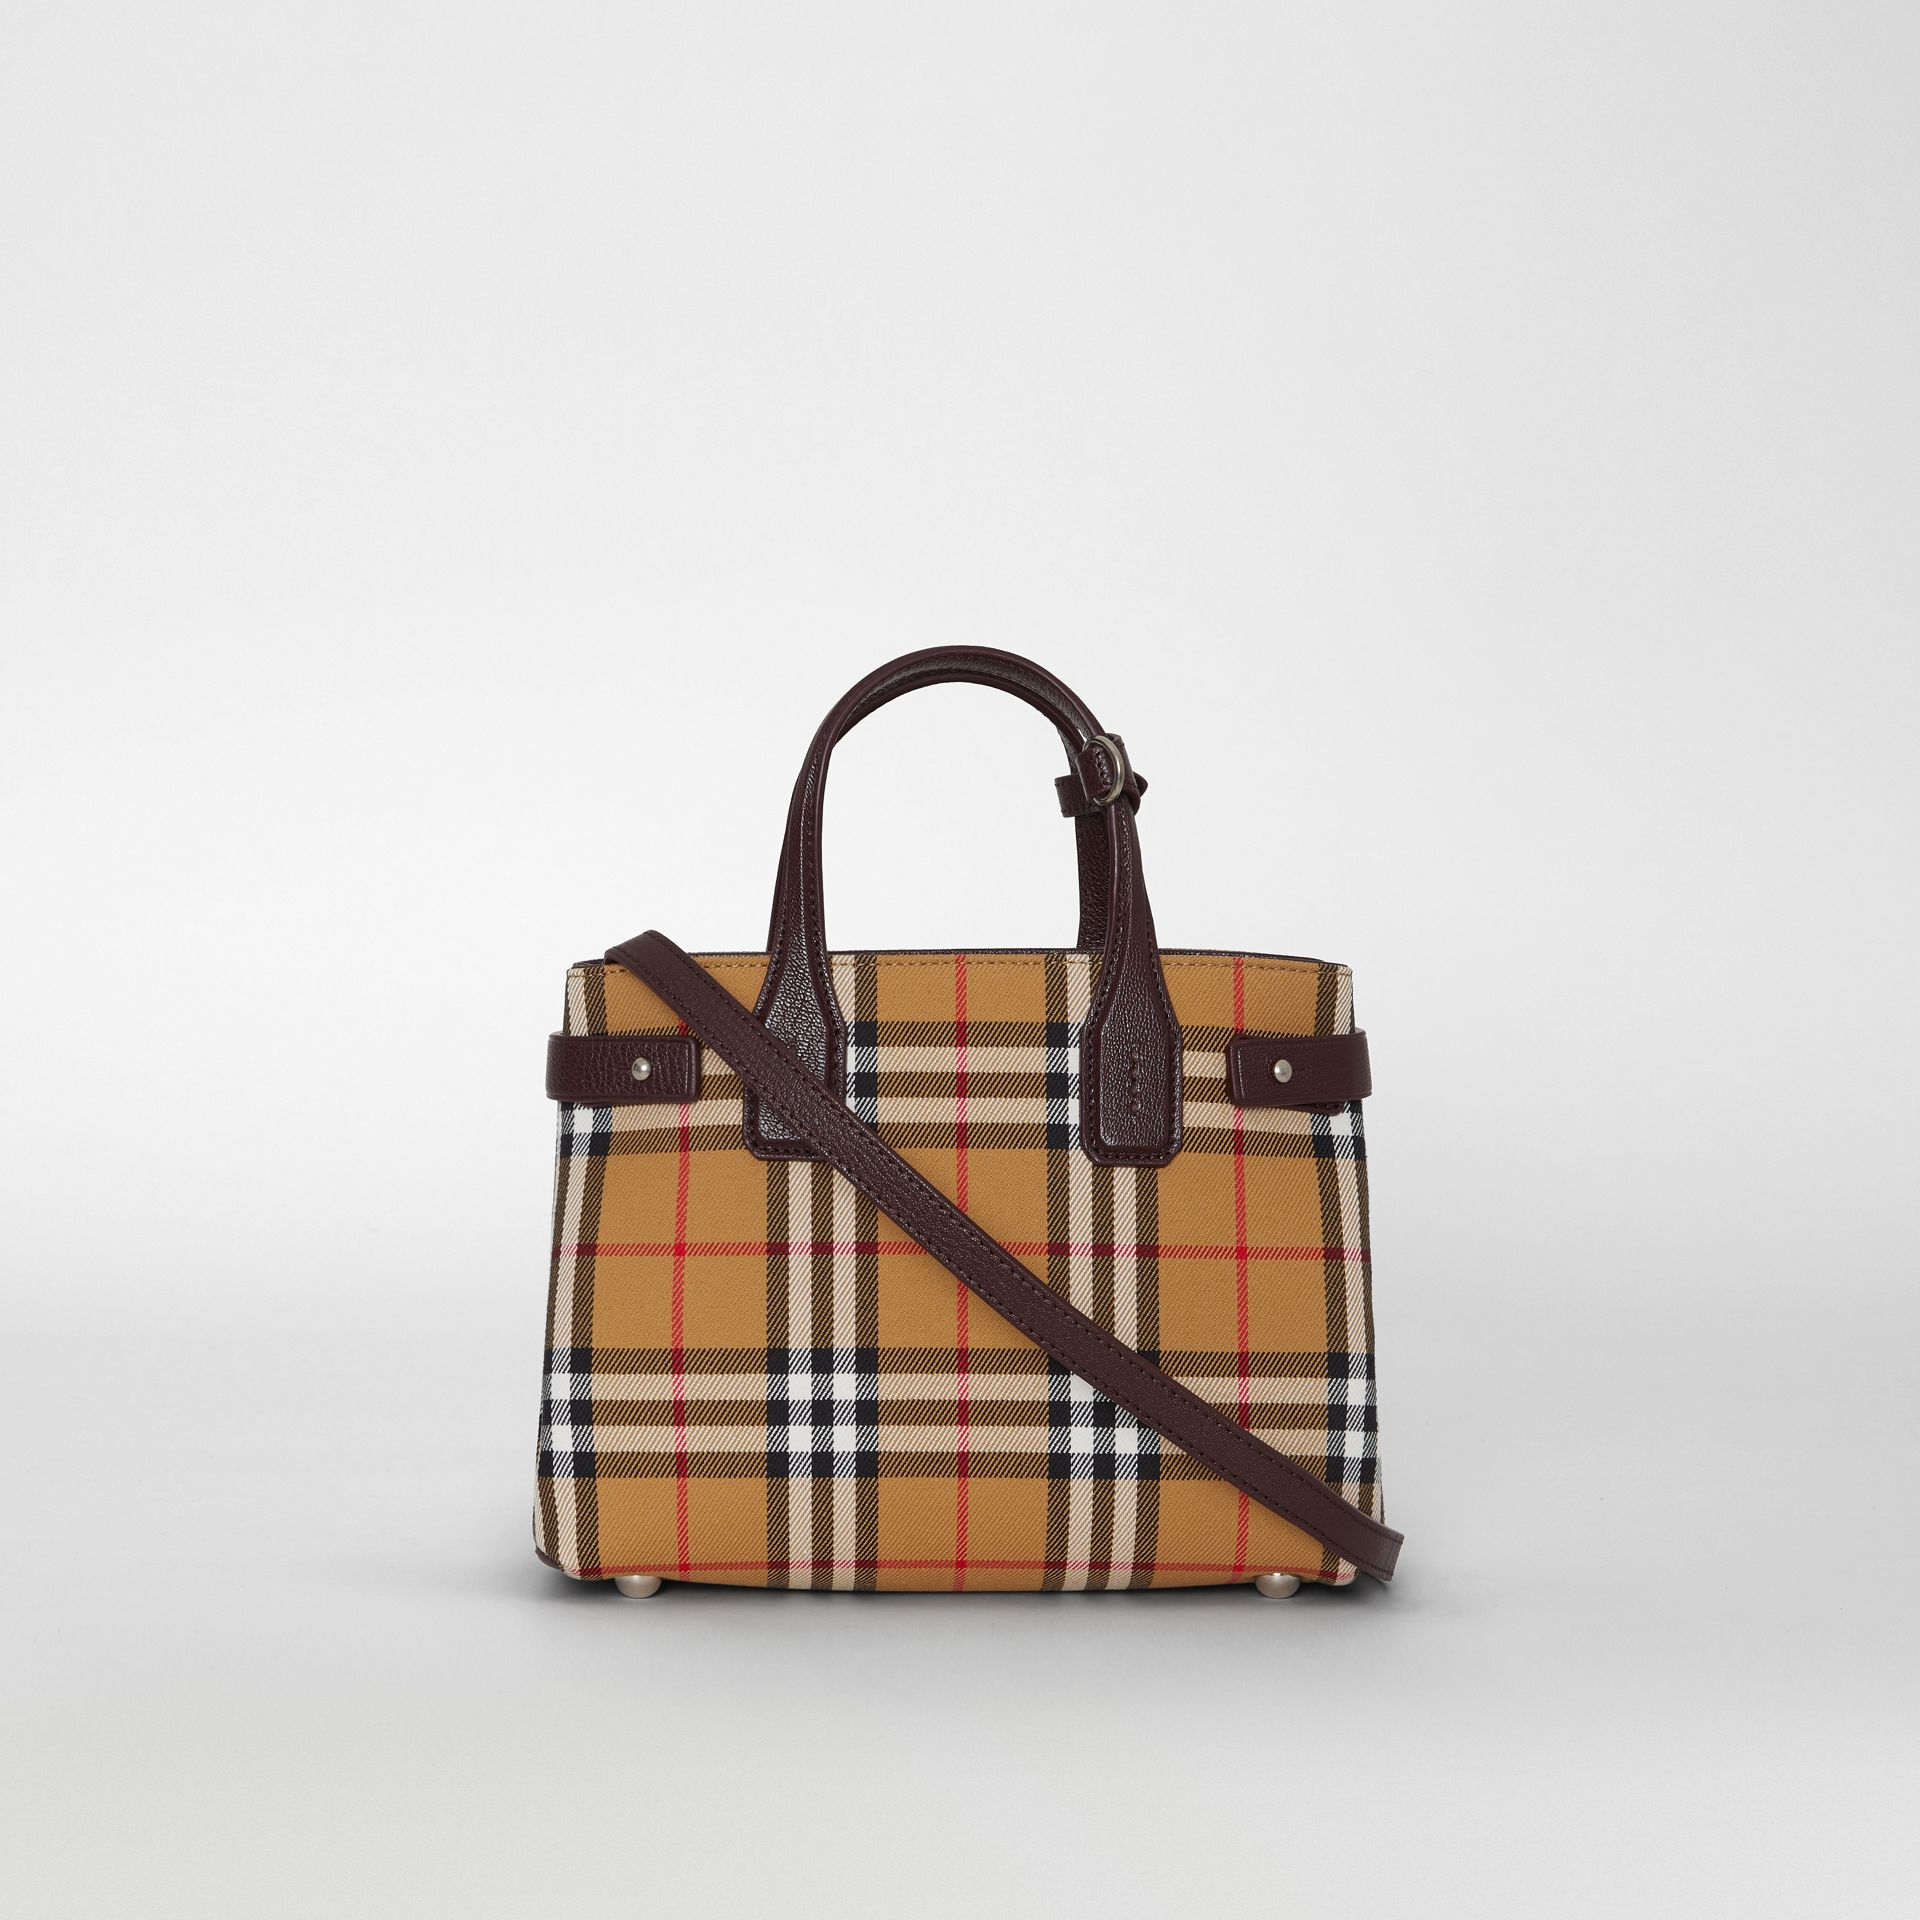 Petit sac The Banner en tissu Vintage check et cuir (Bordeaux Intense) - Femme | Burberry - photo de la galerie 7